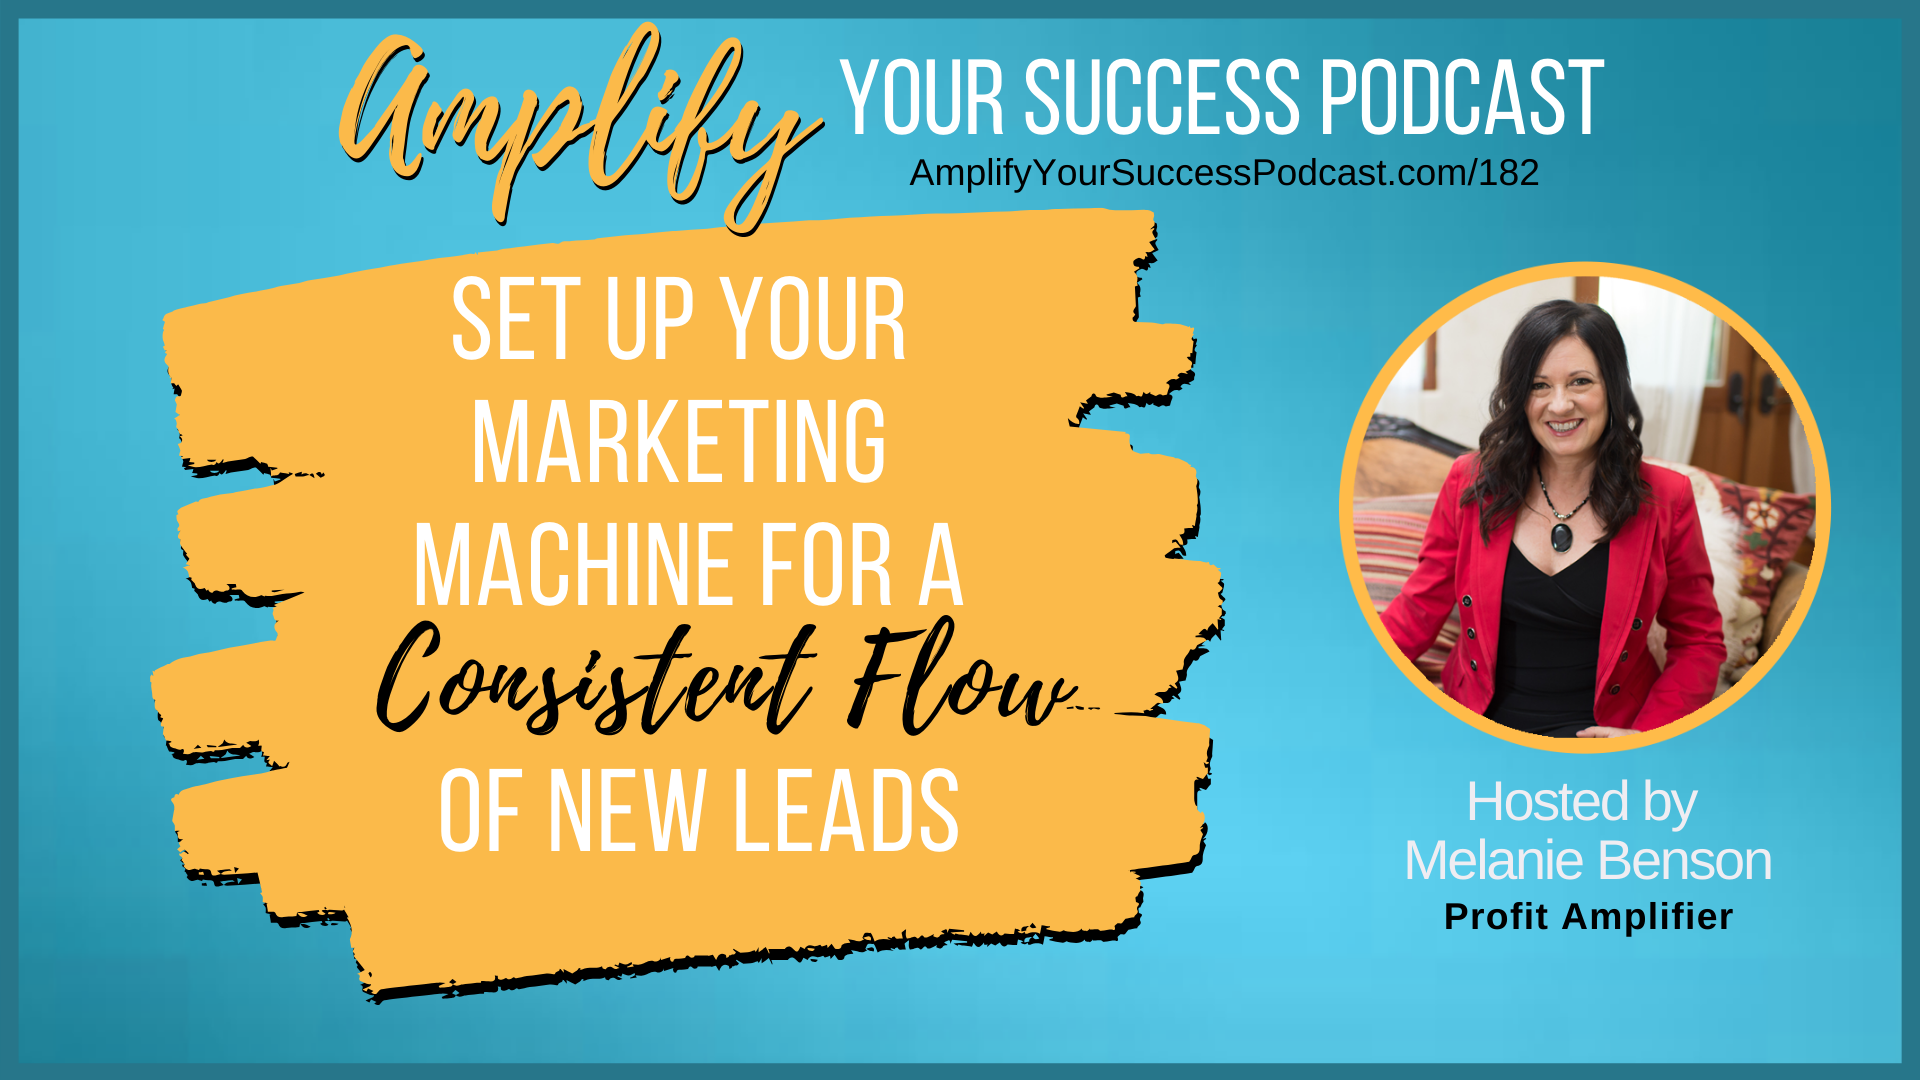 Set Up Your Marketing Machine for a Consistent Flow of New Leads on Amplify Your Success Podcast Episode 182 with Melanie Benson